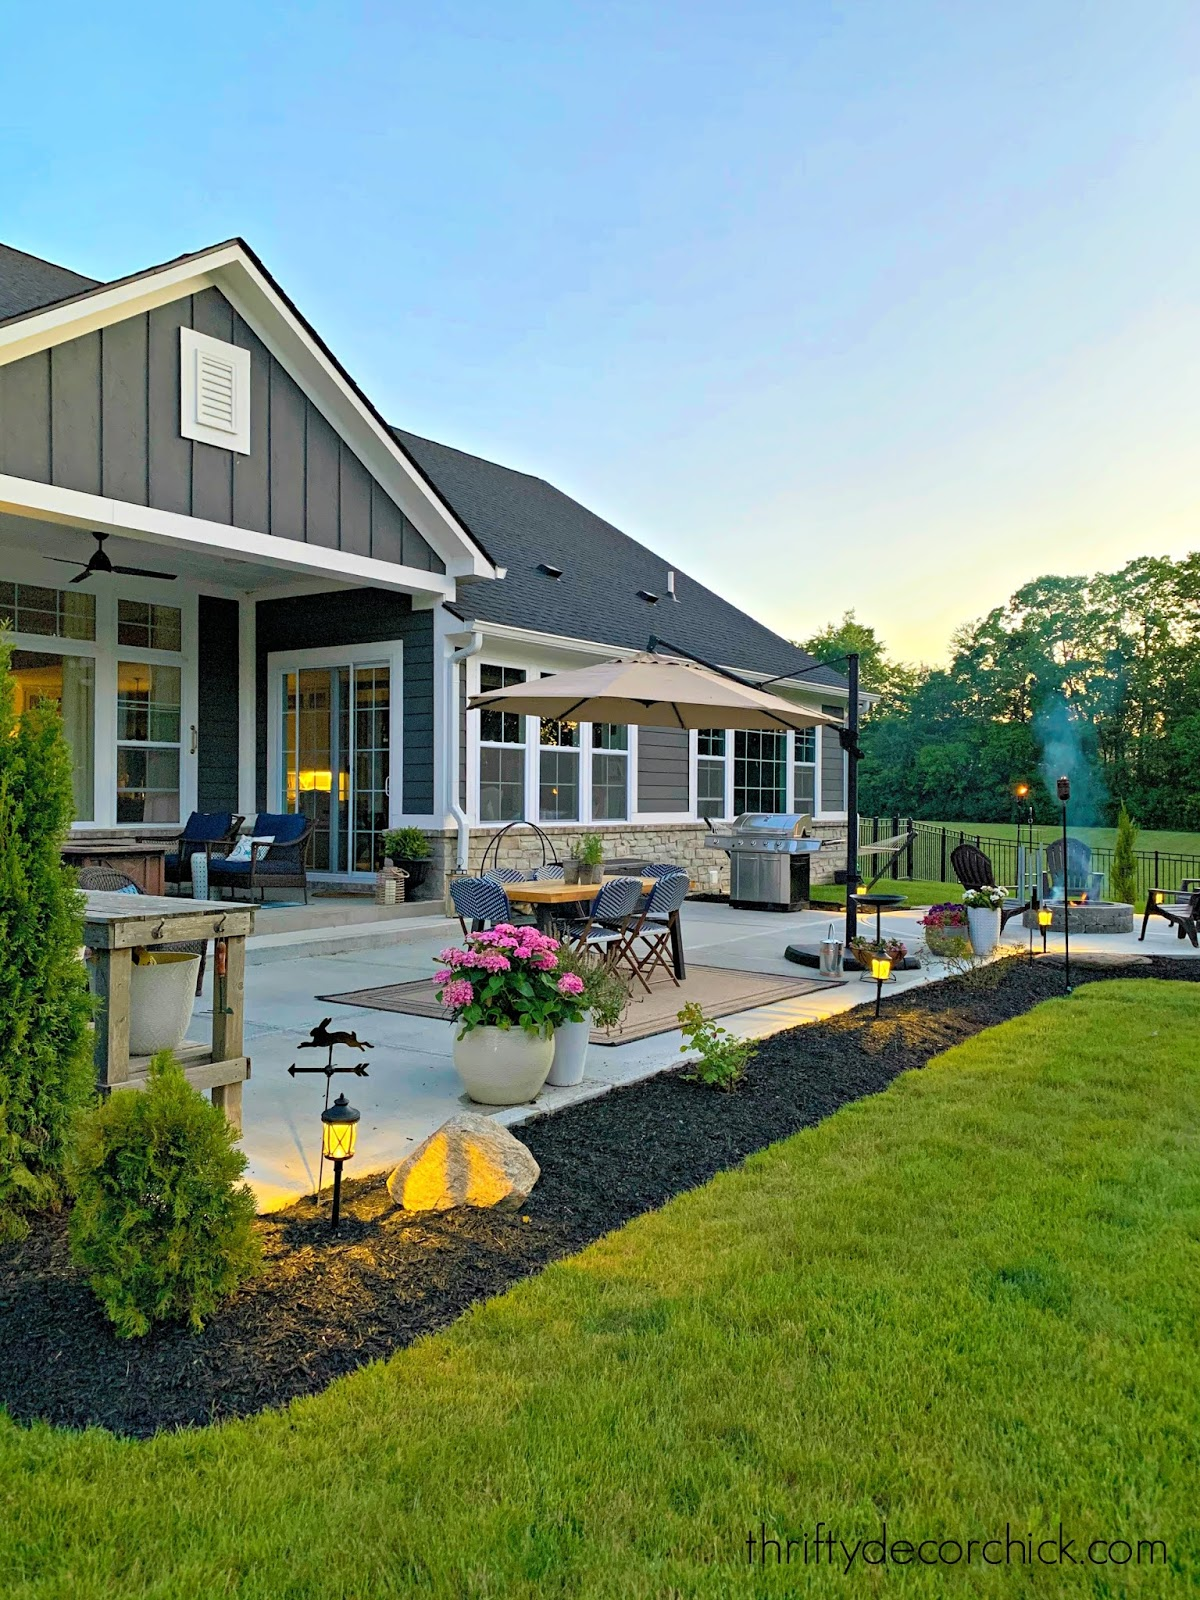 Modern Craftsman exterior and patio